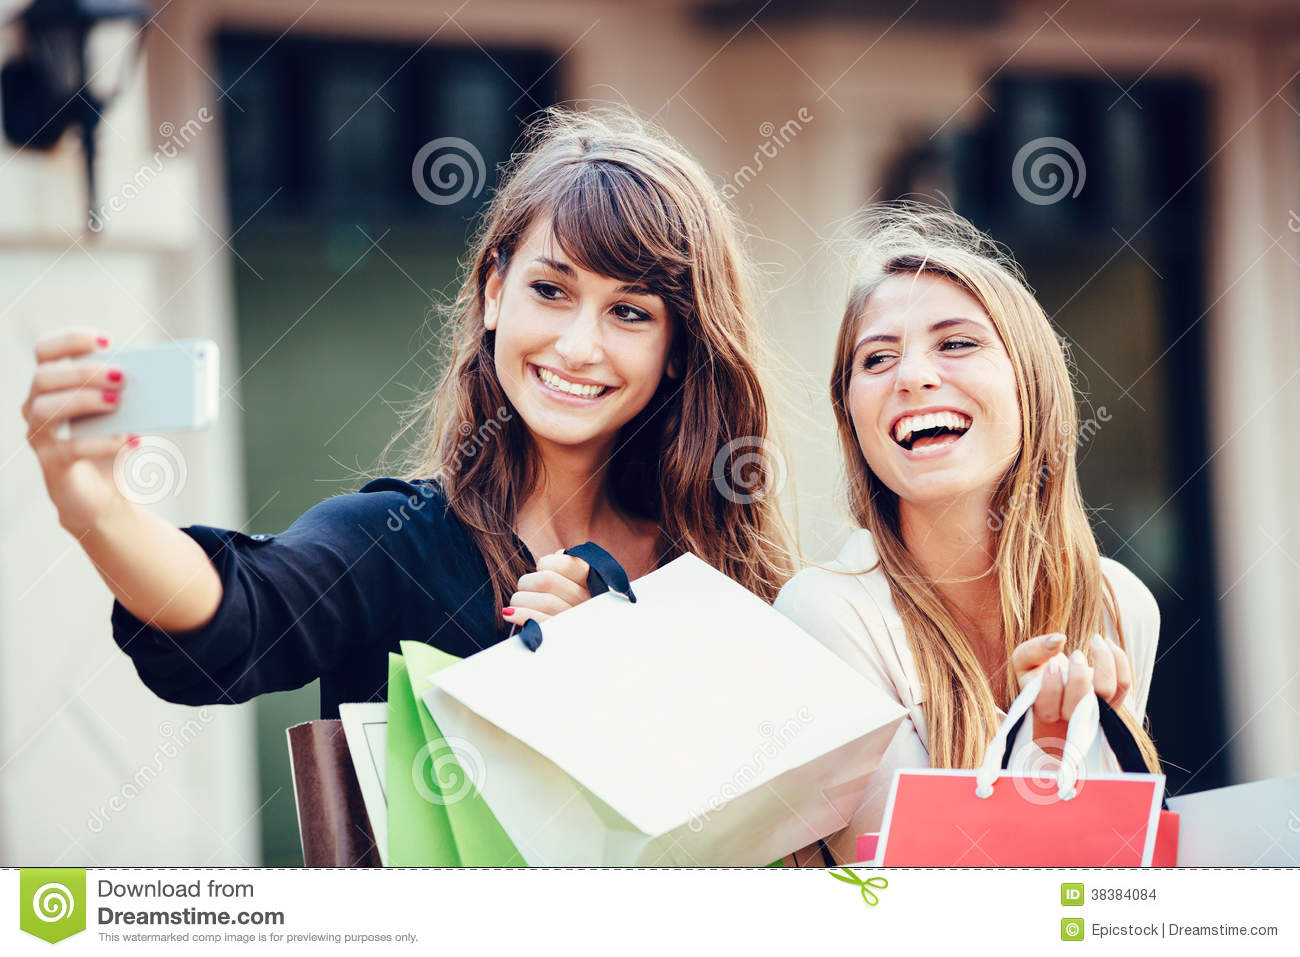 Two young women shopping at the mall taking a selfie